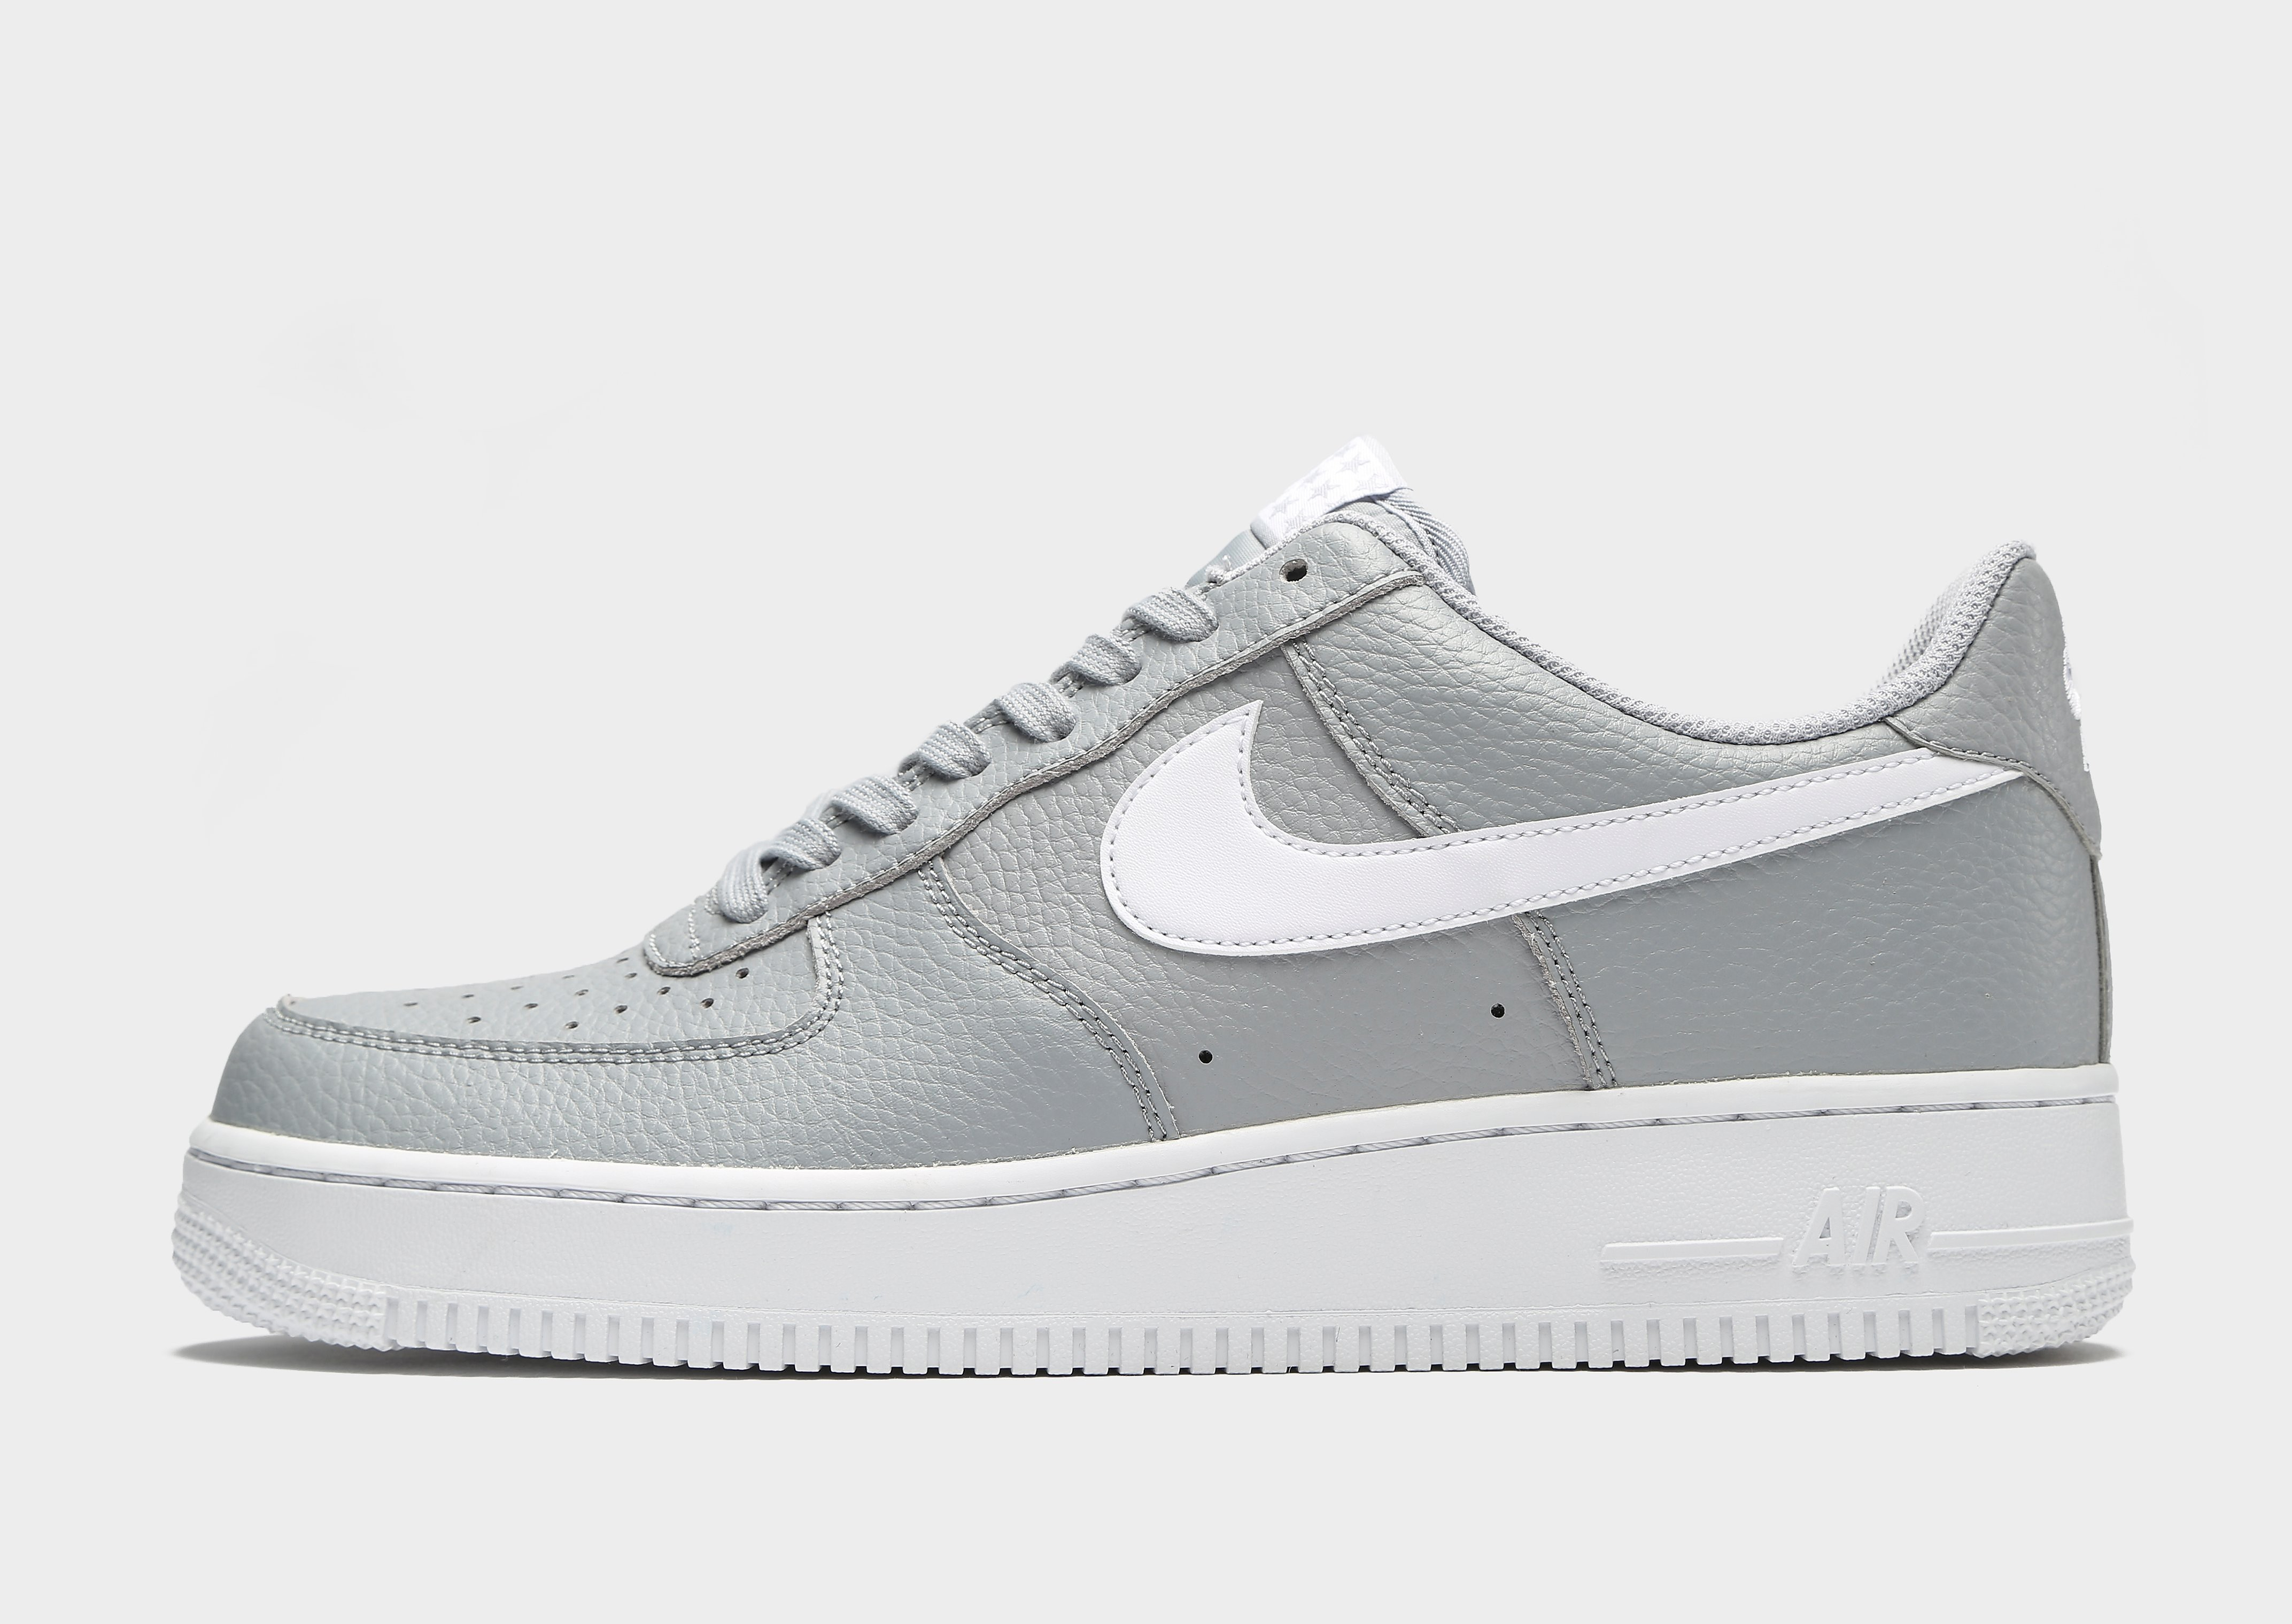 Nike Air Force 1 Low Miehet